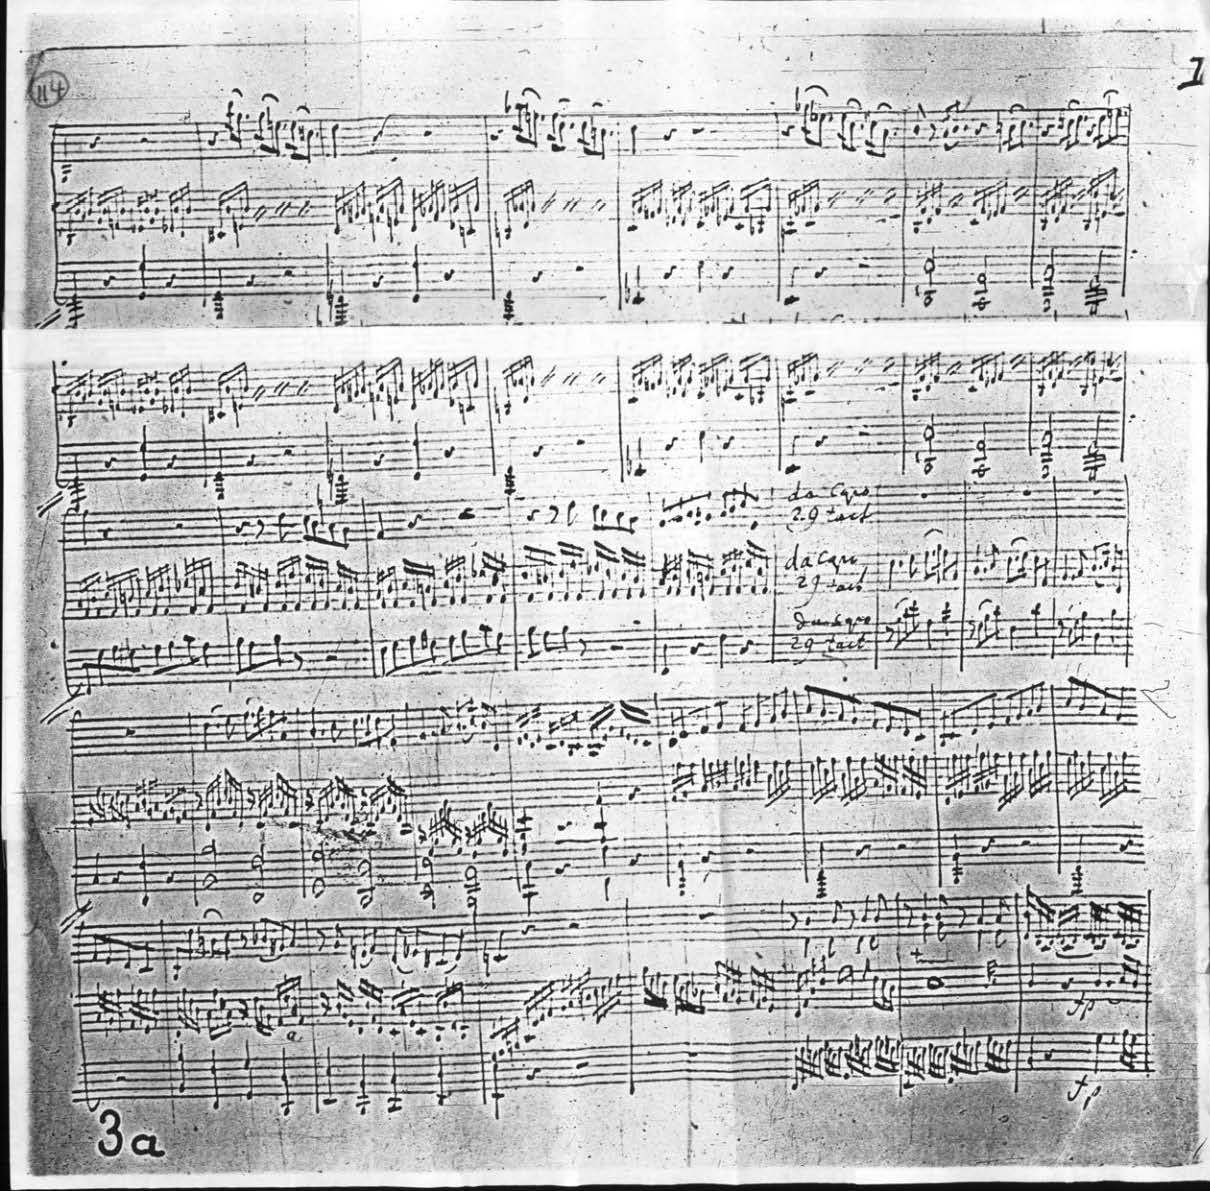 Allegro of a Sonate B-dur for Piano and Violin Fragment, KV 372, p. 3a (Source: National Library of Austria, Music Collection, Shelfmark: 6462/2863)